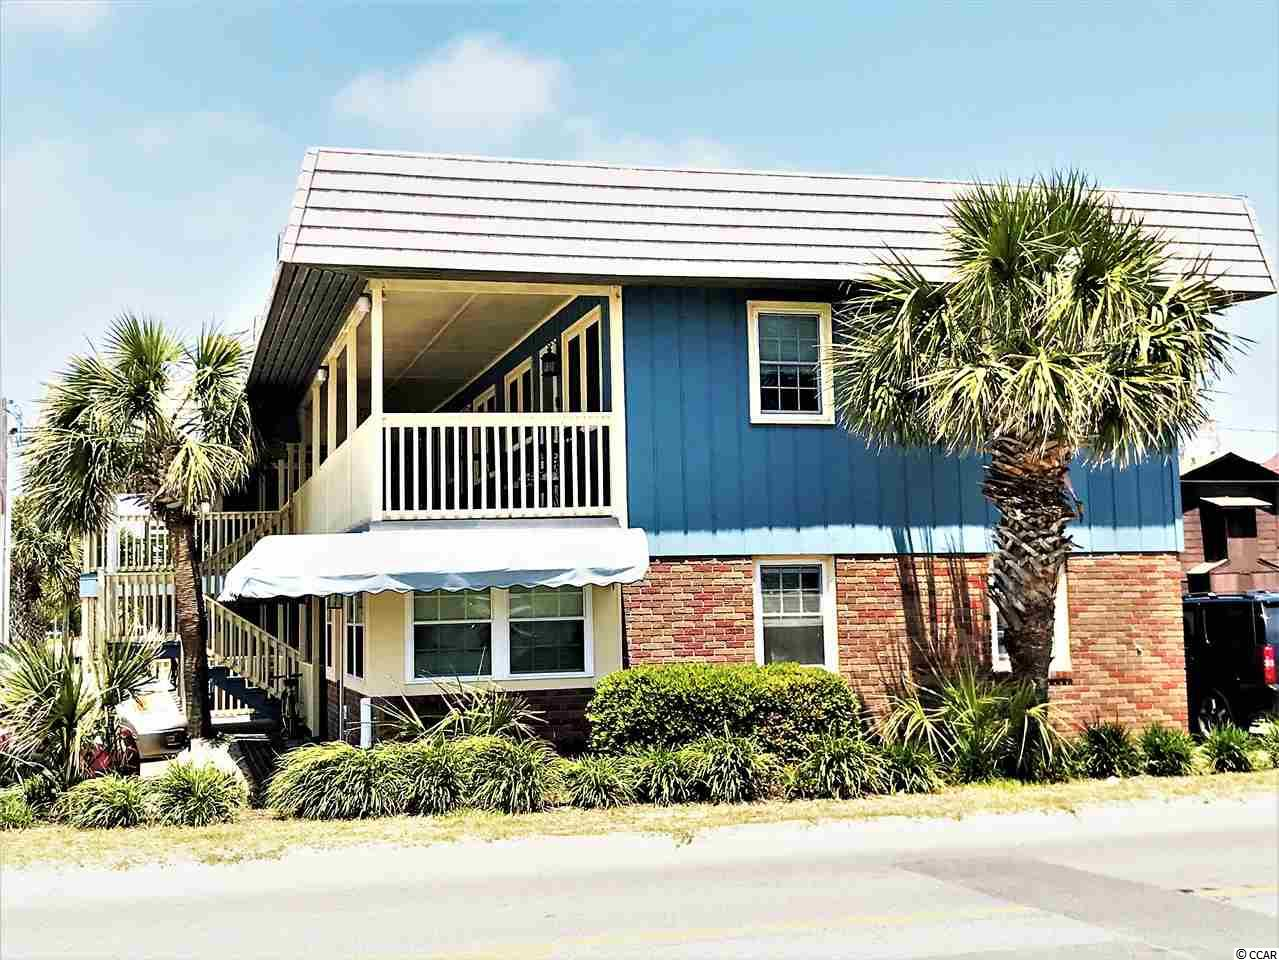 """LOCATION, LOCATION, LOCATION!! Enjoy the ocean breeze sitting on the front porch or relaxing on the sofa in this ADORABLE 2nd floor Cherry Bay condo, located directly across the street from the ocean in sought after Cherry Grove Beach.  This extremely well maintained unit is fully furnished and move-in ready with a queen-sized bed and queen-size futon sleeper sofa easily sleeps 4.  Steps away from the beach!  For  an investor or someone just wanting a """"place at the beach"""" for a little R&R, or both!!"""